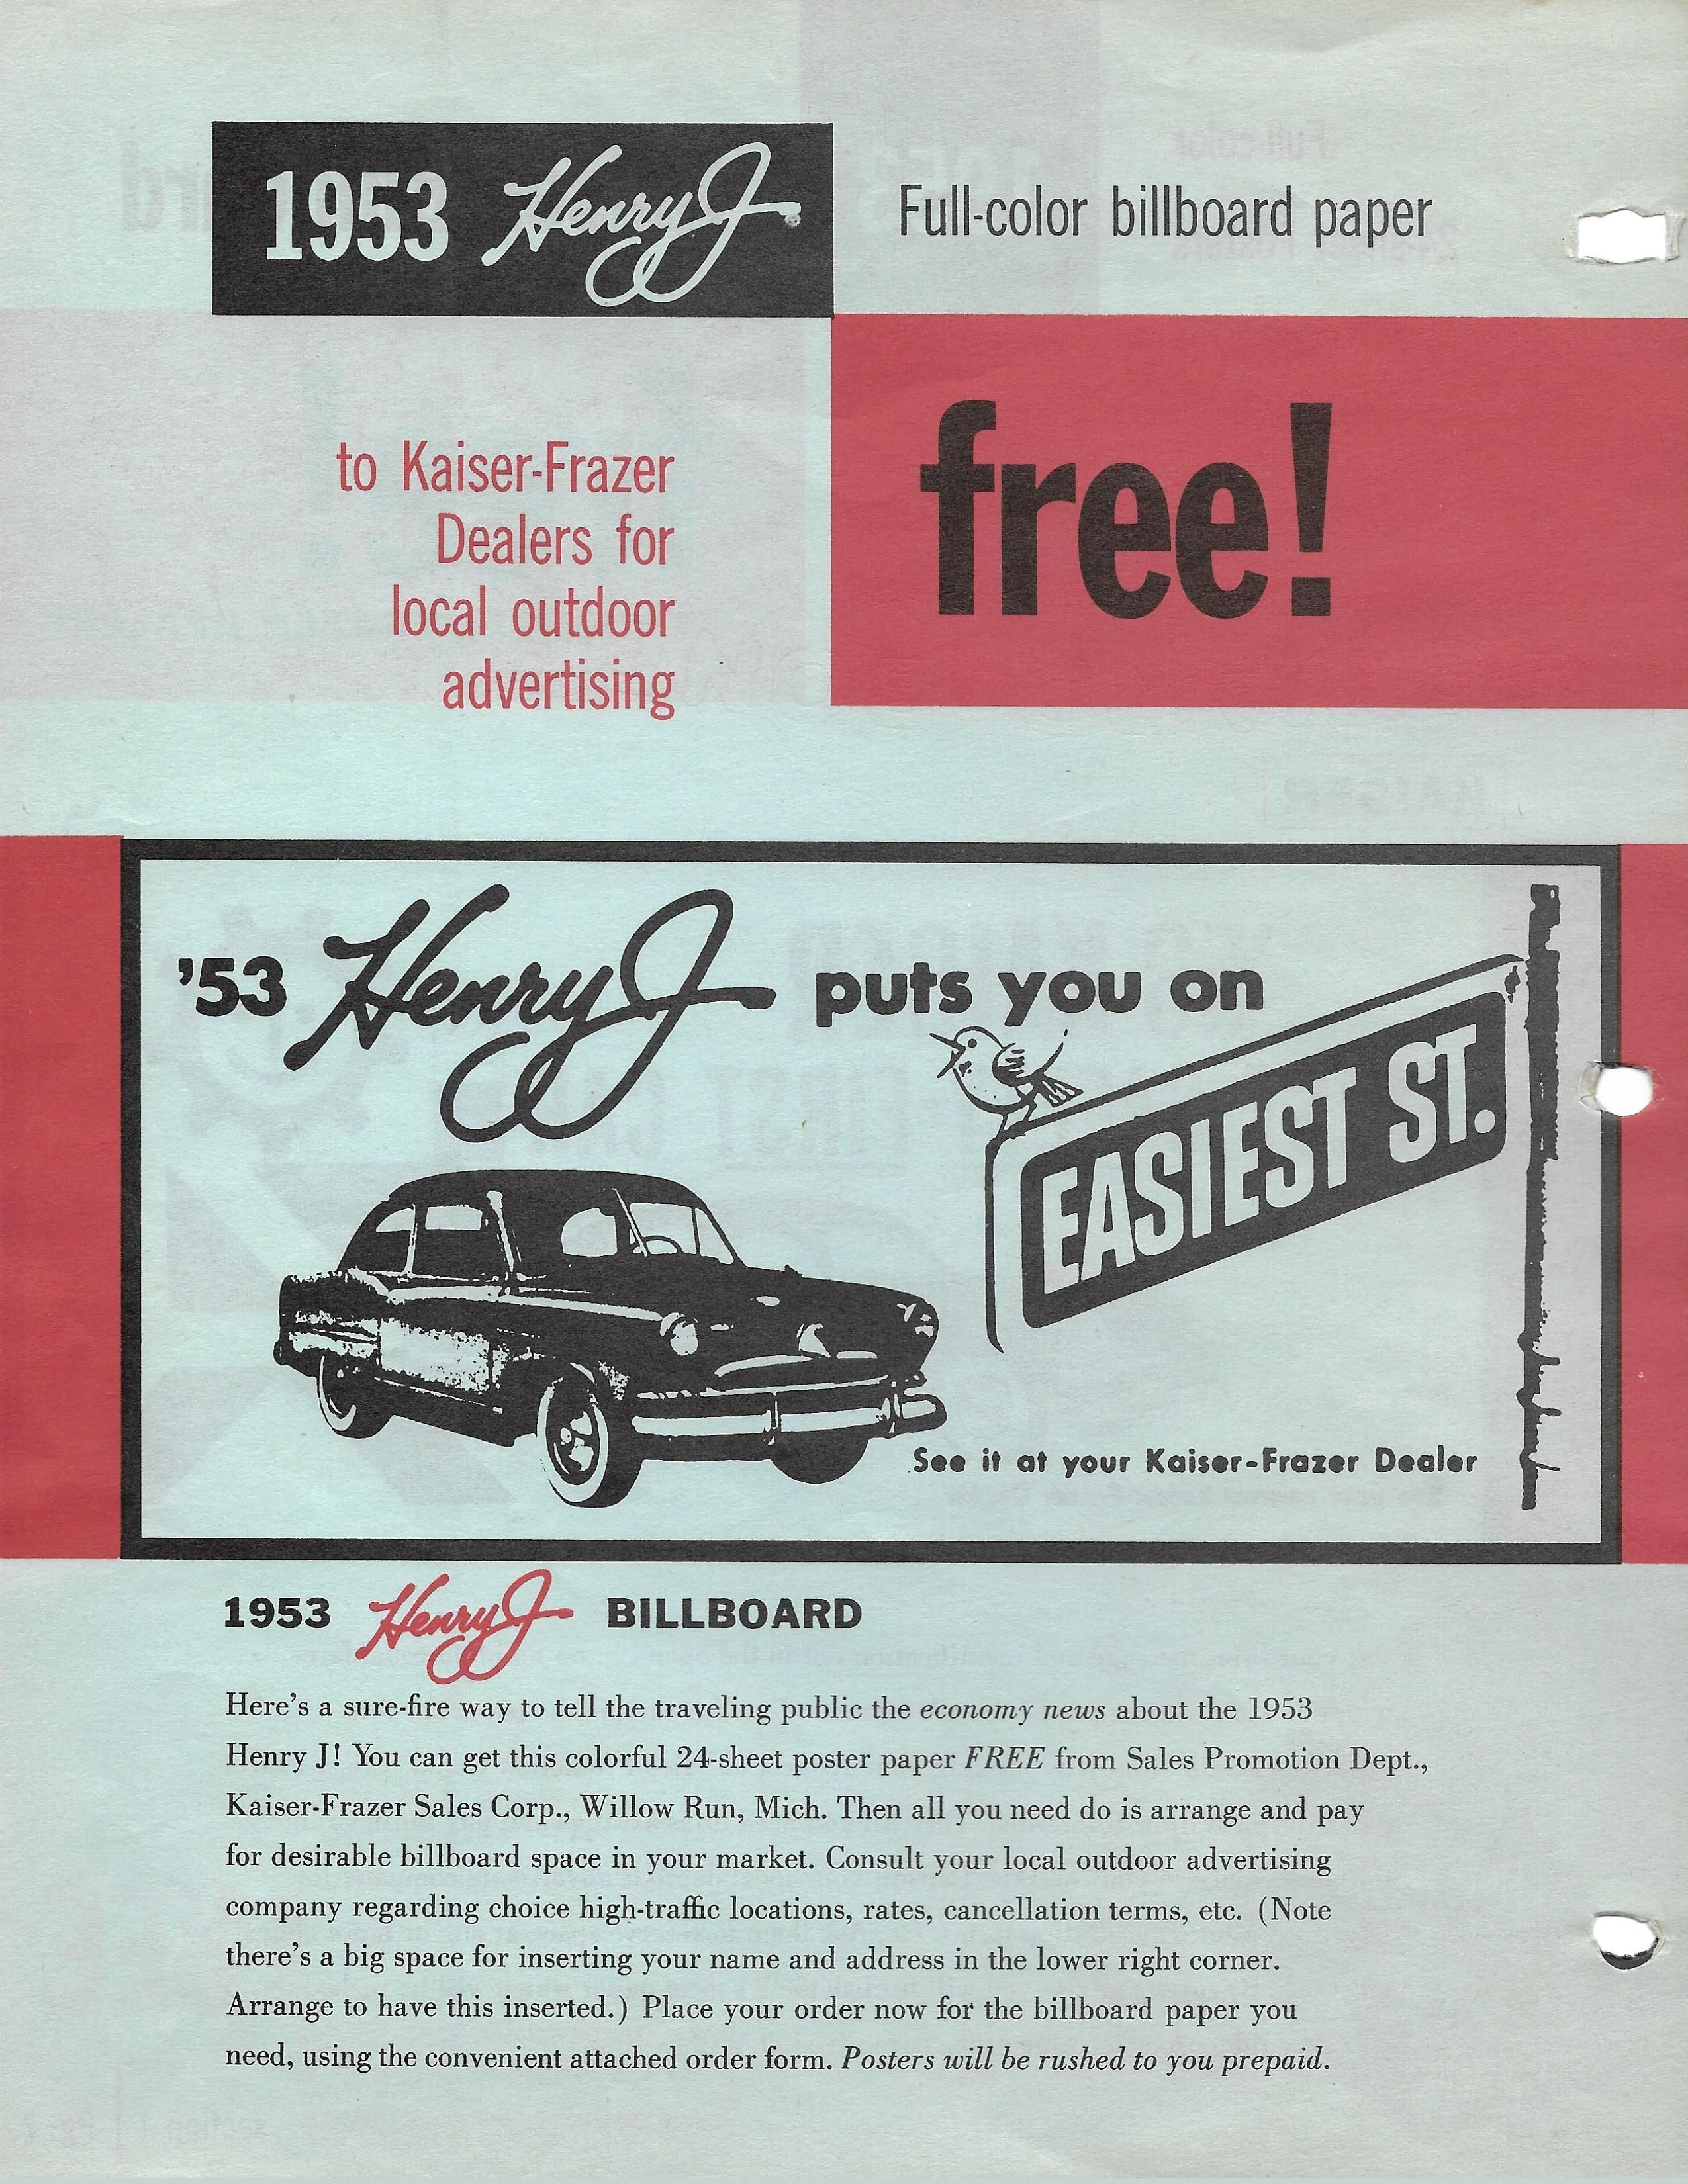 Dealers could get free billboards for the 1953 henry j by